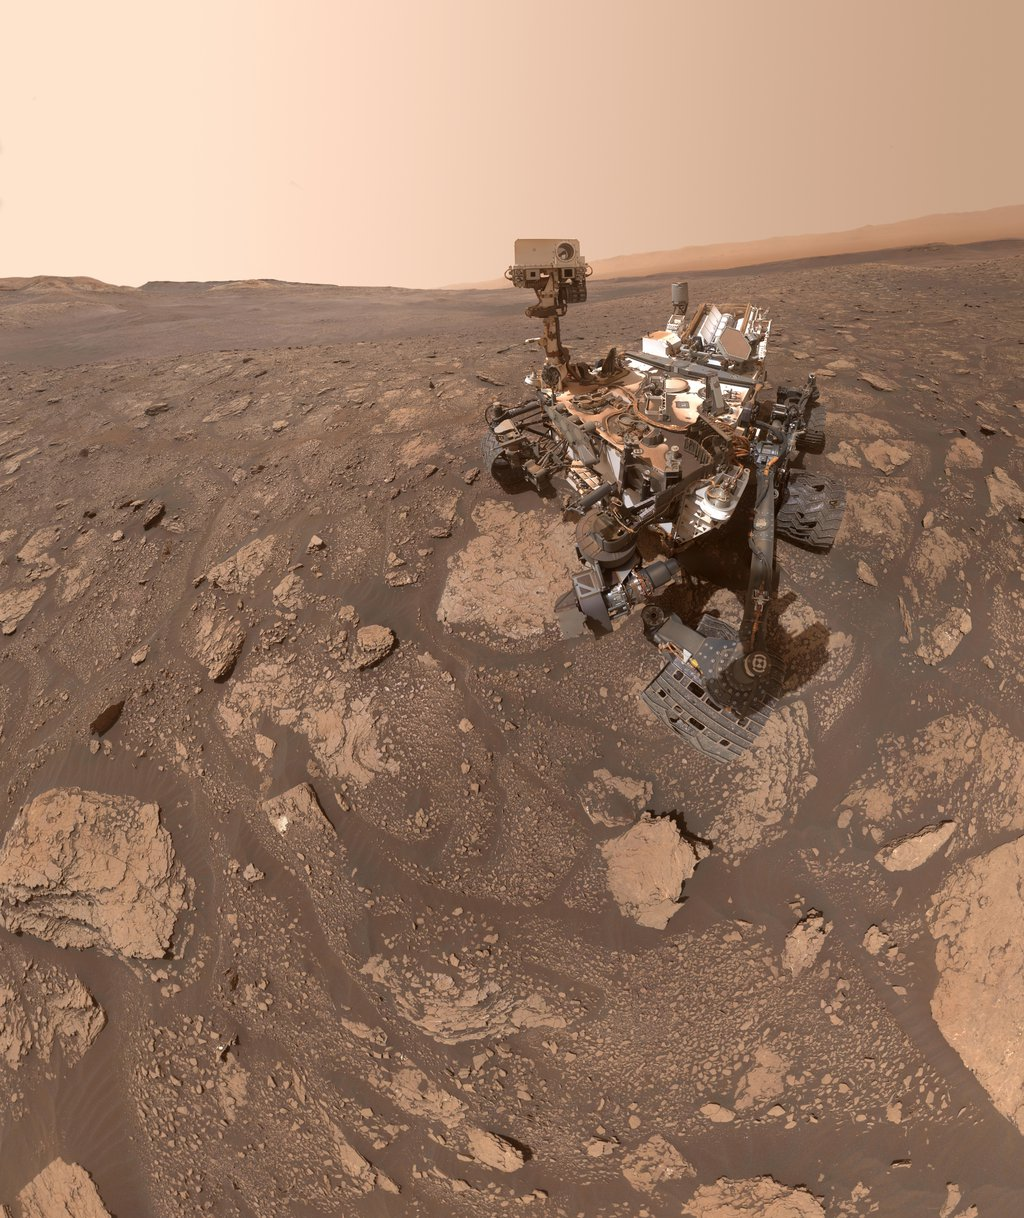 NASA's Curiosity Mars rover took this selfie at a location nicknamed Mary Anning after a 19th century English paleontologist. Curiosity snagged three samples of drilled rock at this site on its way out of the Glen Torridon region.